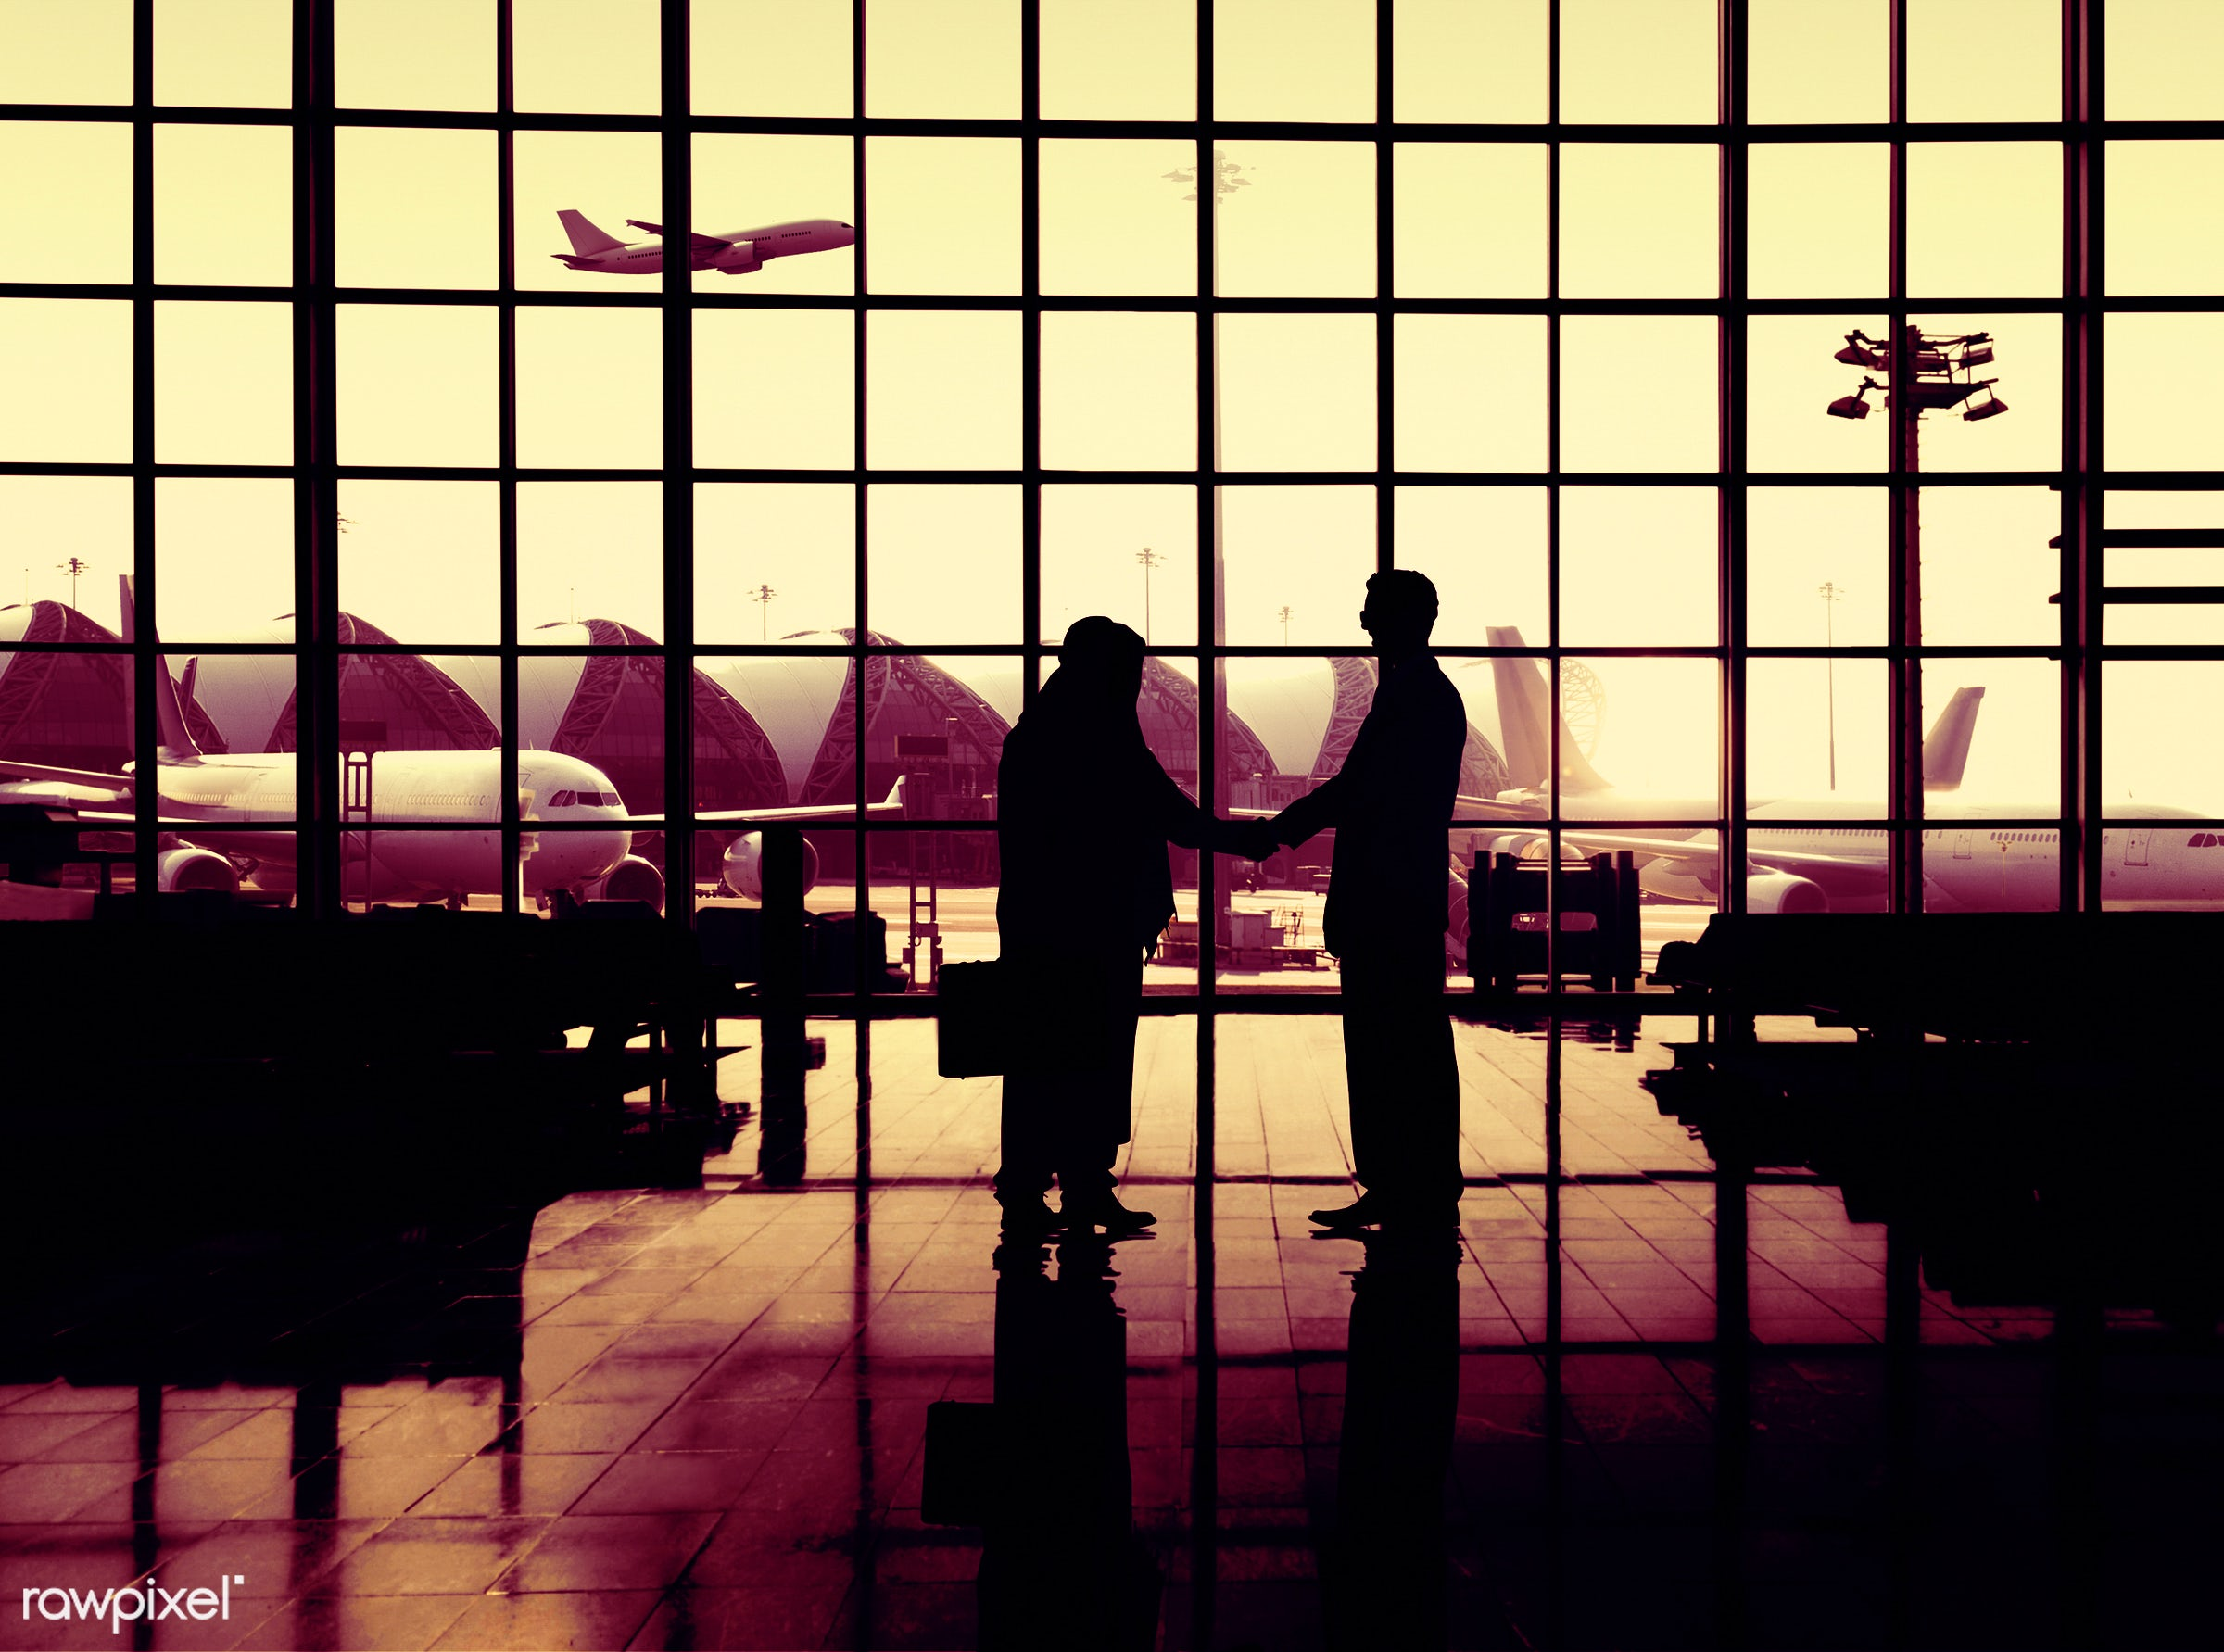 3d, agreement, aircraft, airplane, airport, airport lounge, architecture, briefcase, building, business, business people,...